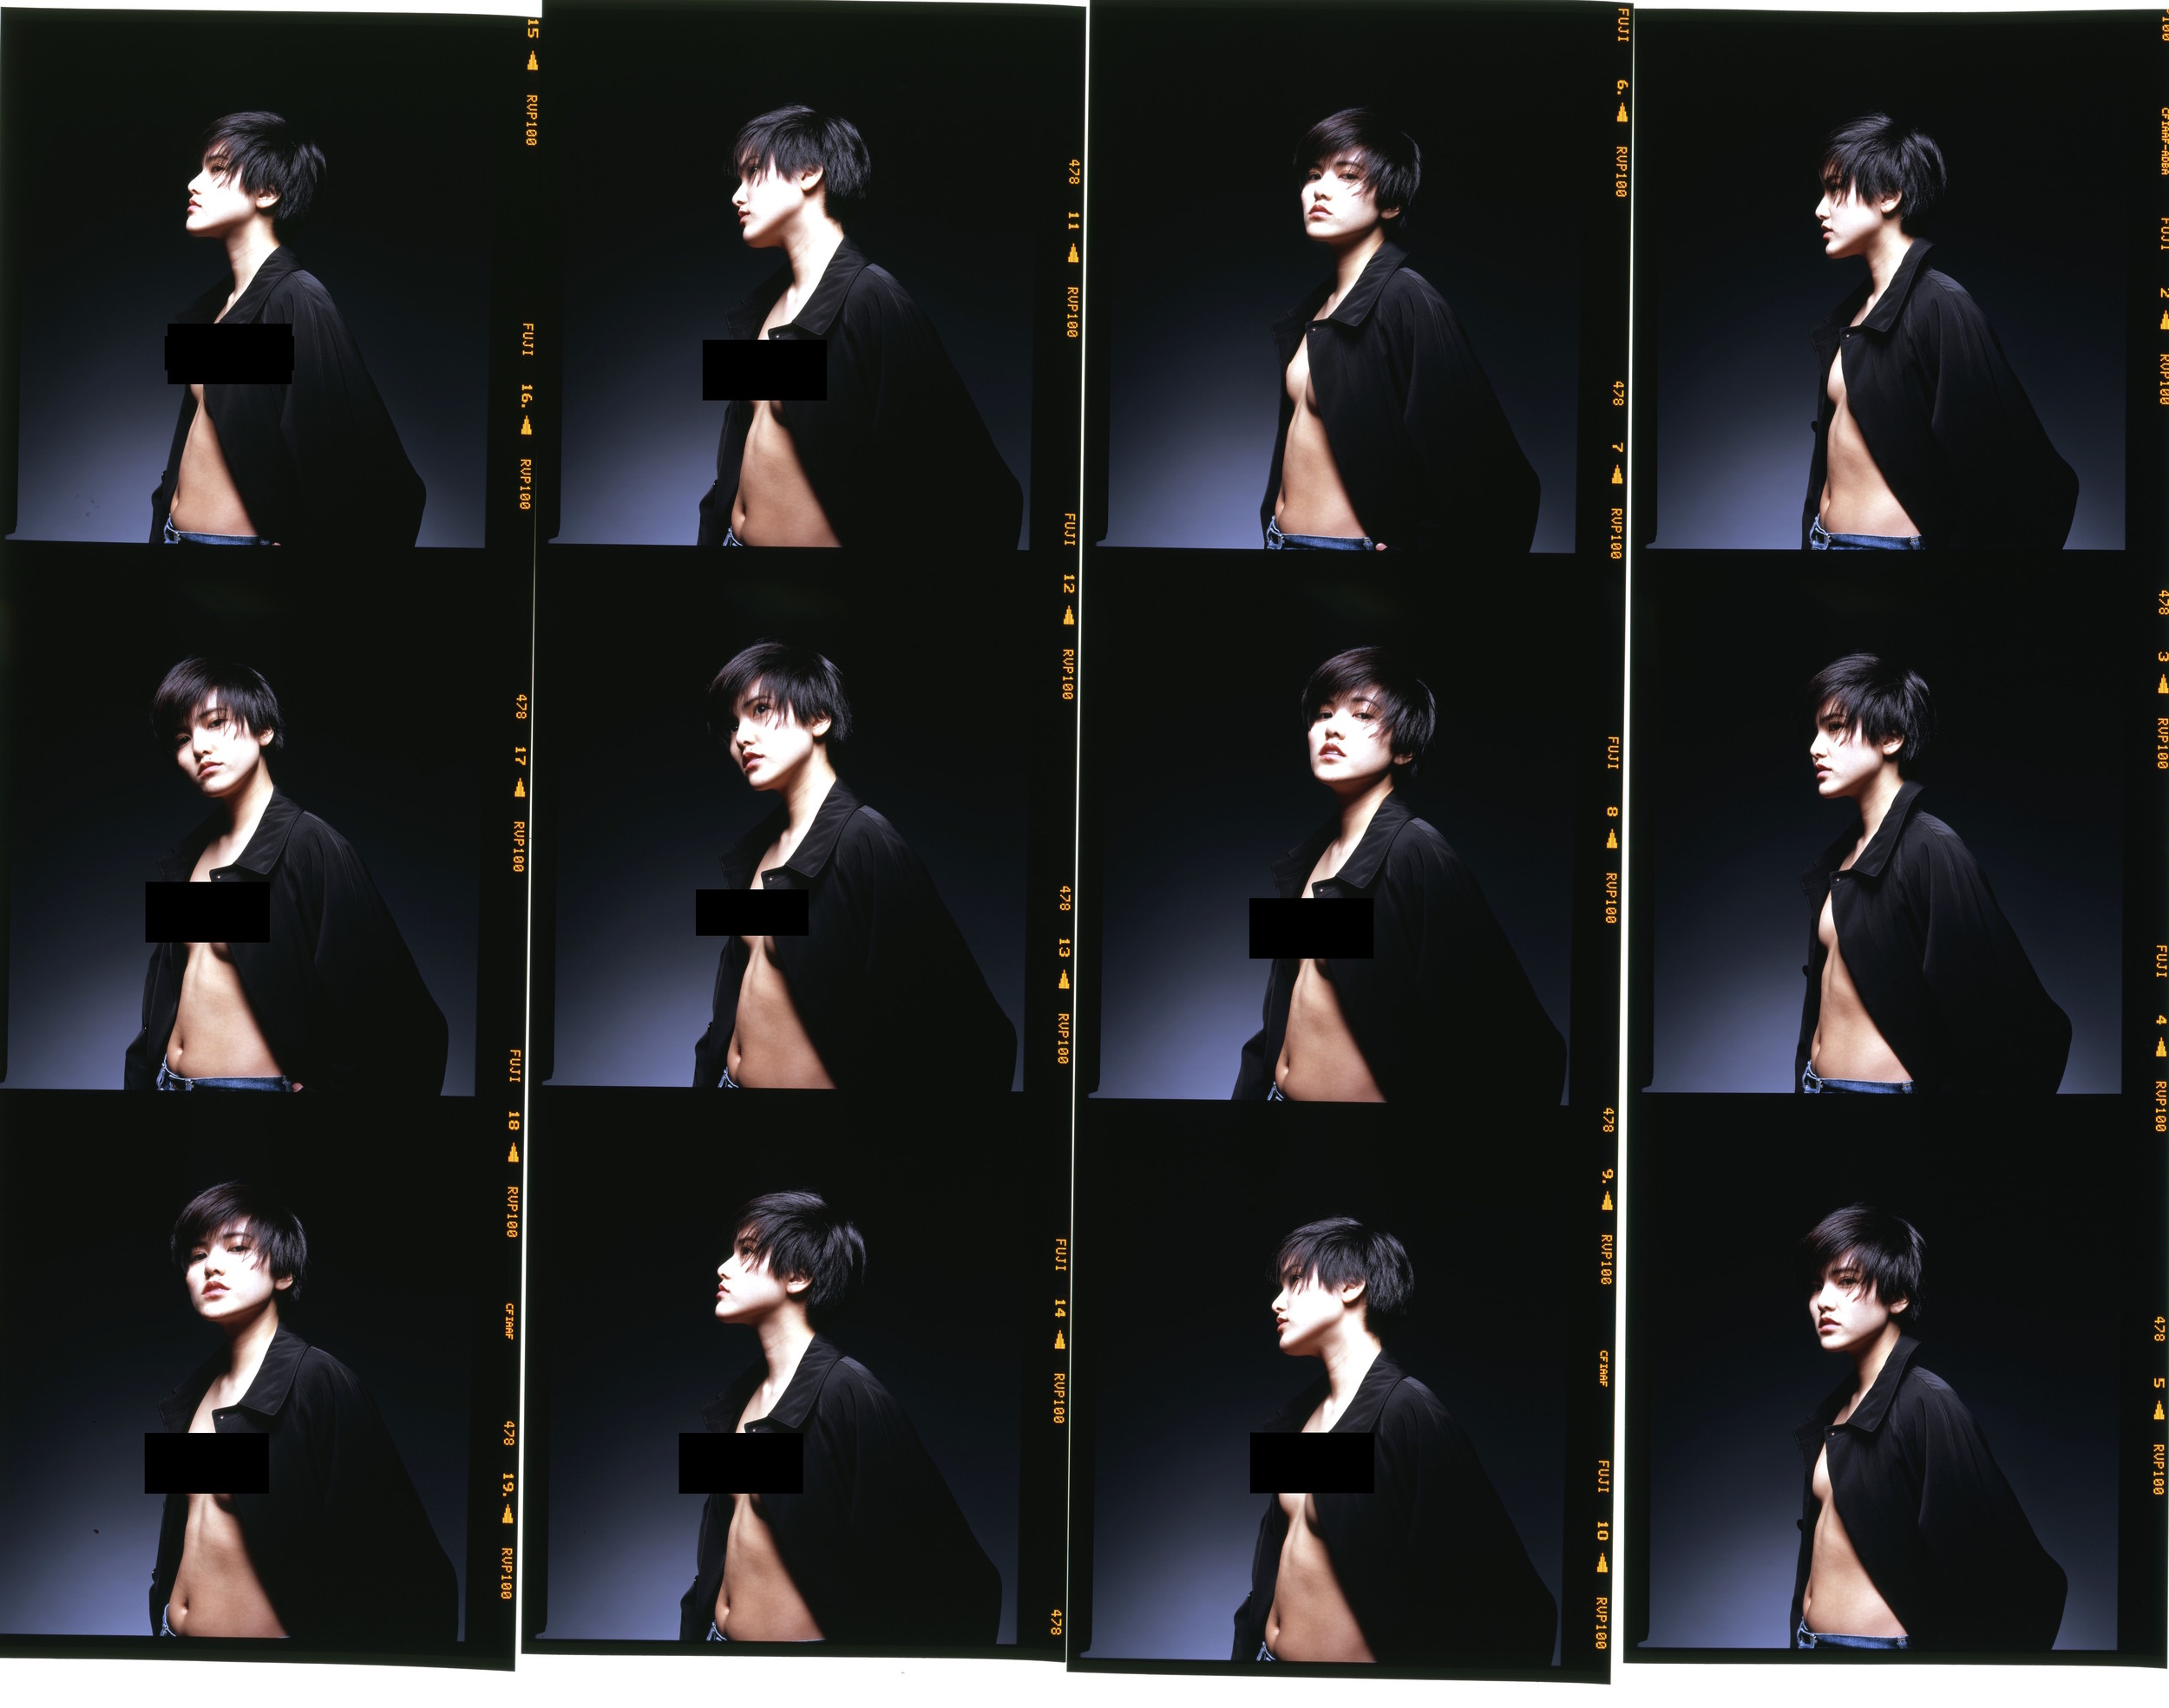 1 of 4 contact sheets